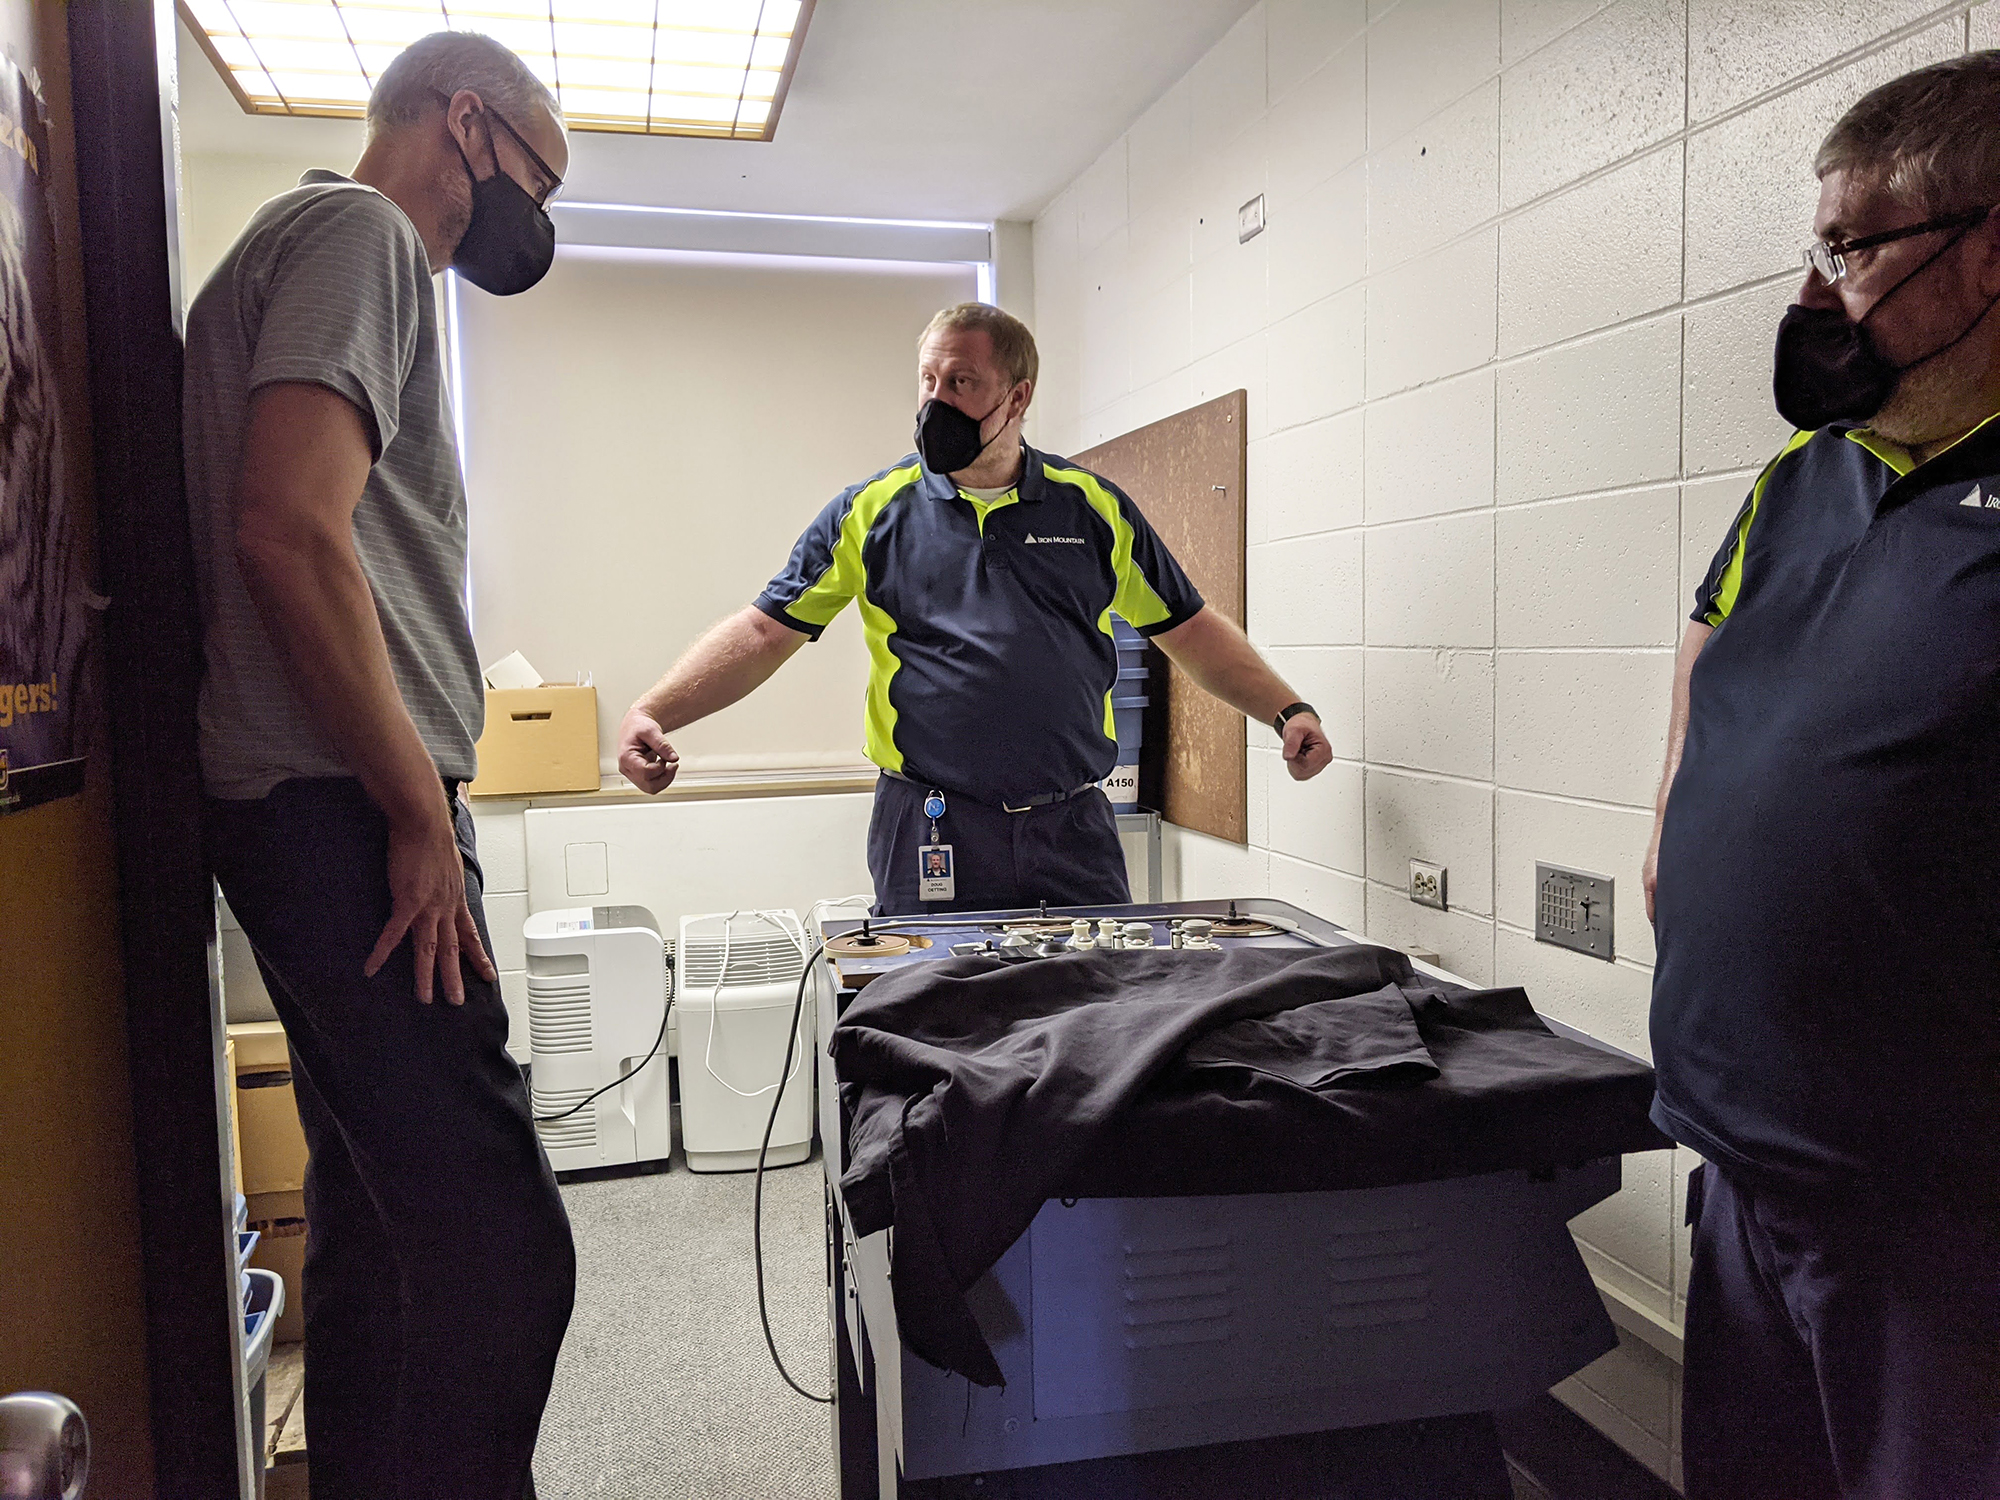 three men discuss moving a large imaging table